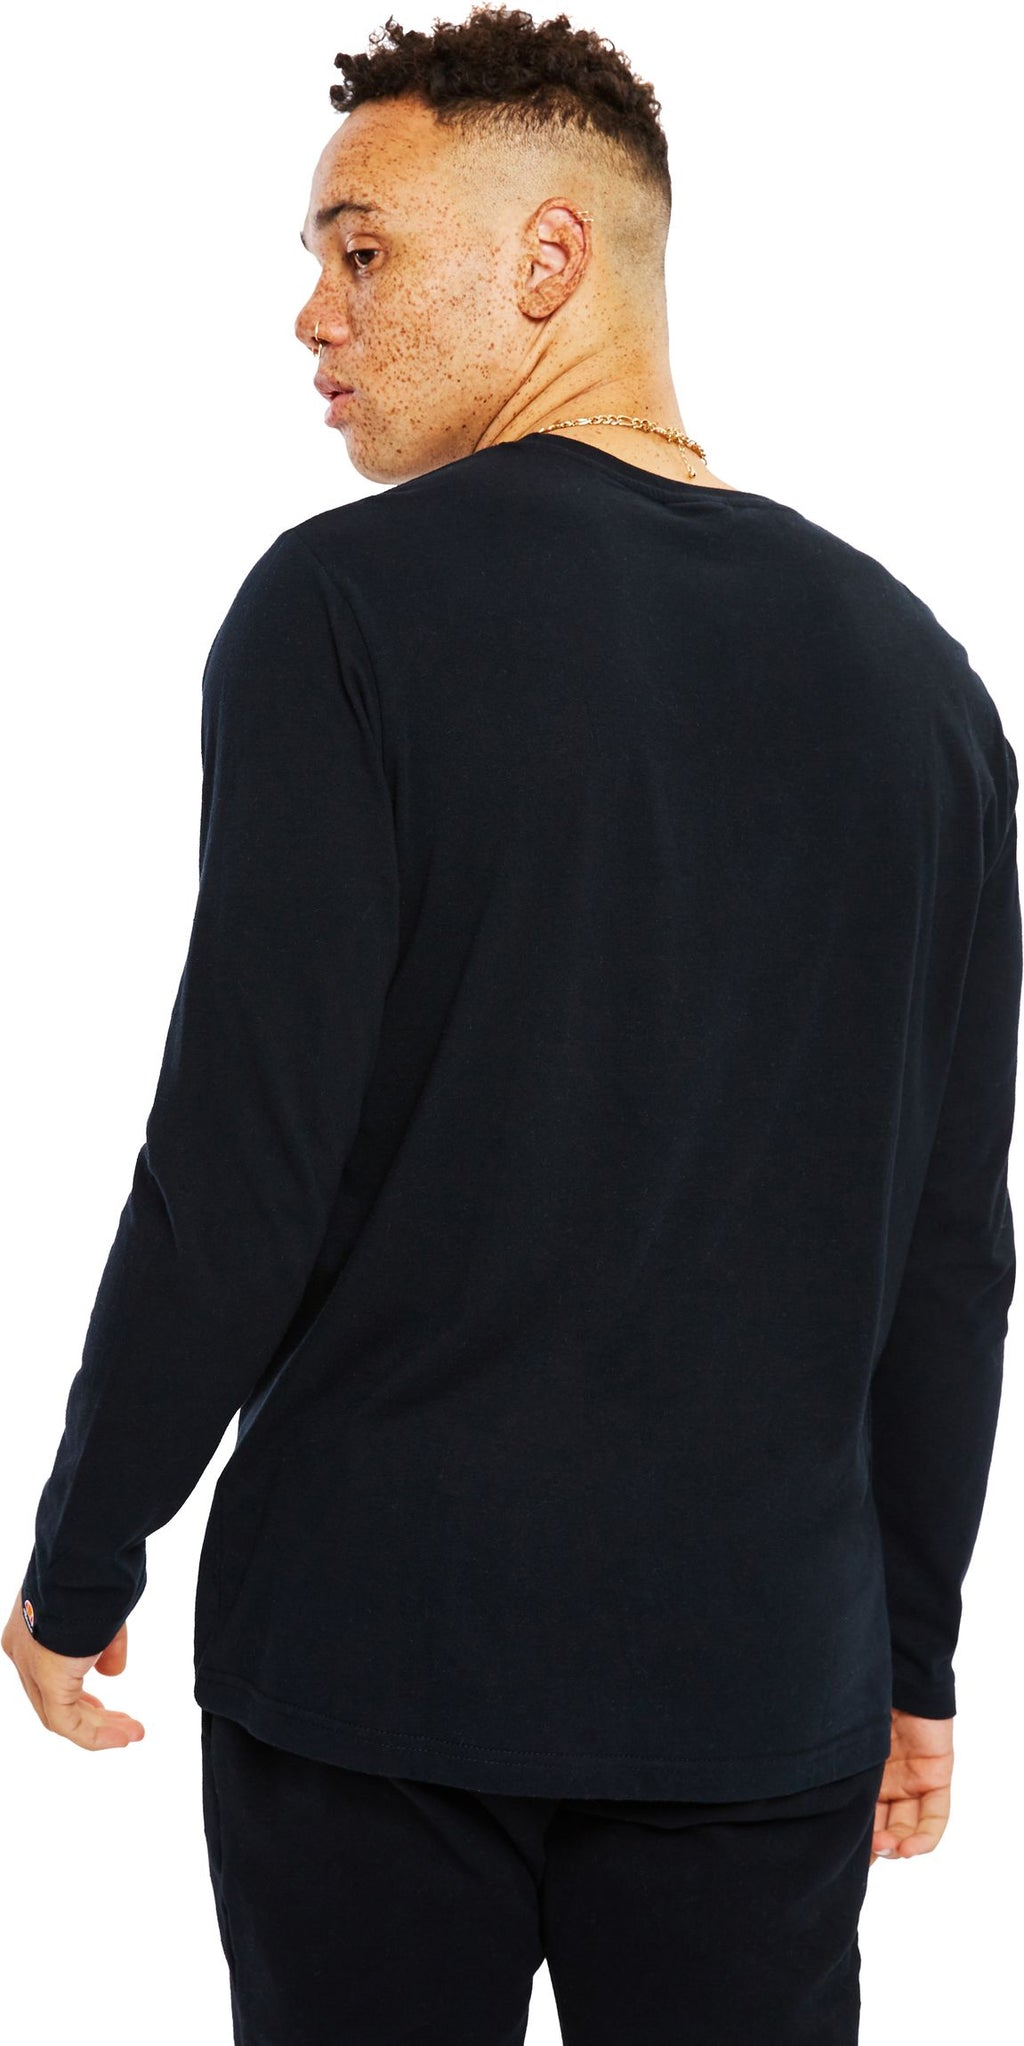 Ellesse-Grazie-Long-Sleeve-T-Shirt-Black